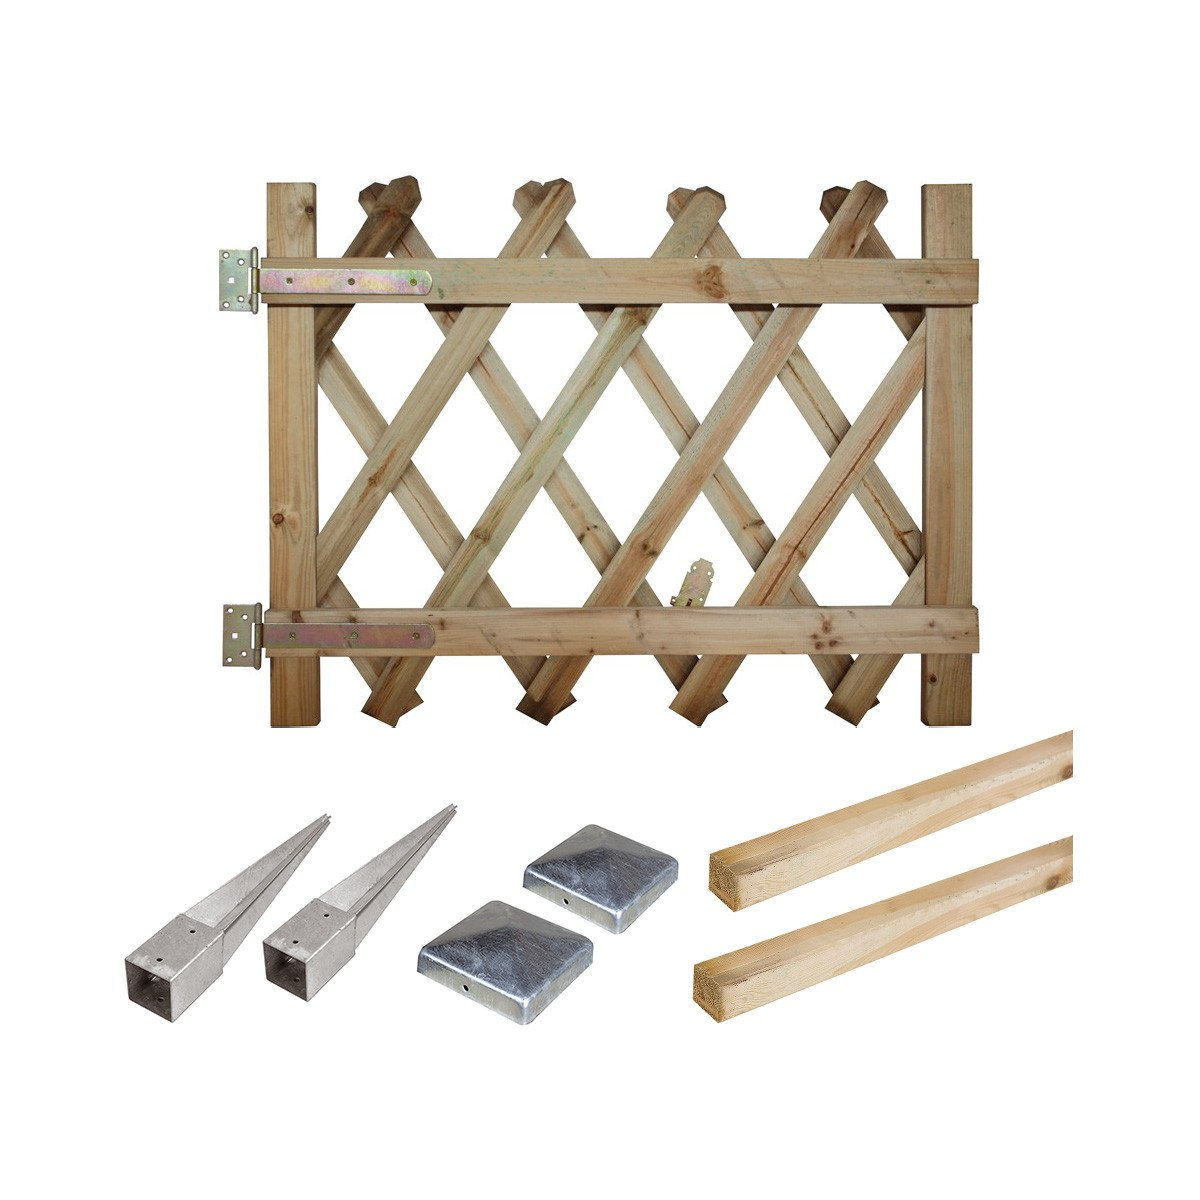 Kit portillon en bois Prunus H 100 cm à enfoncer